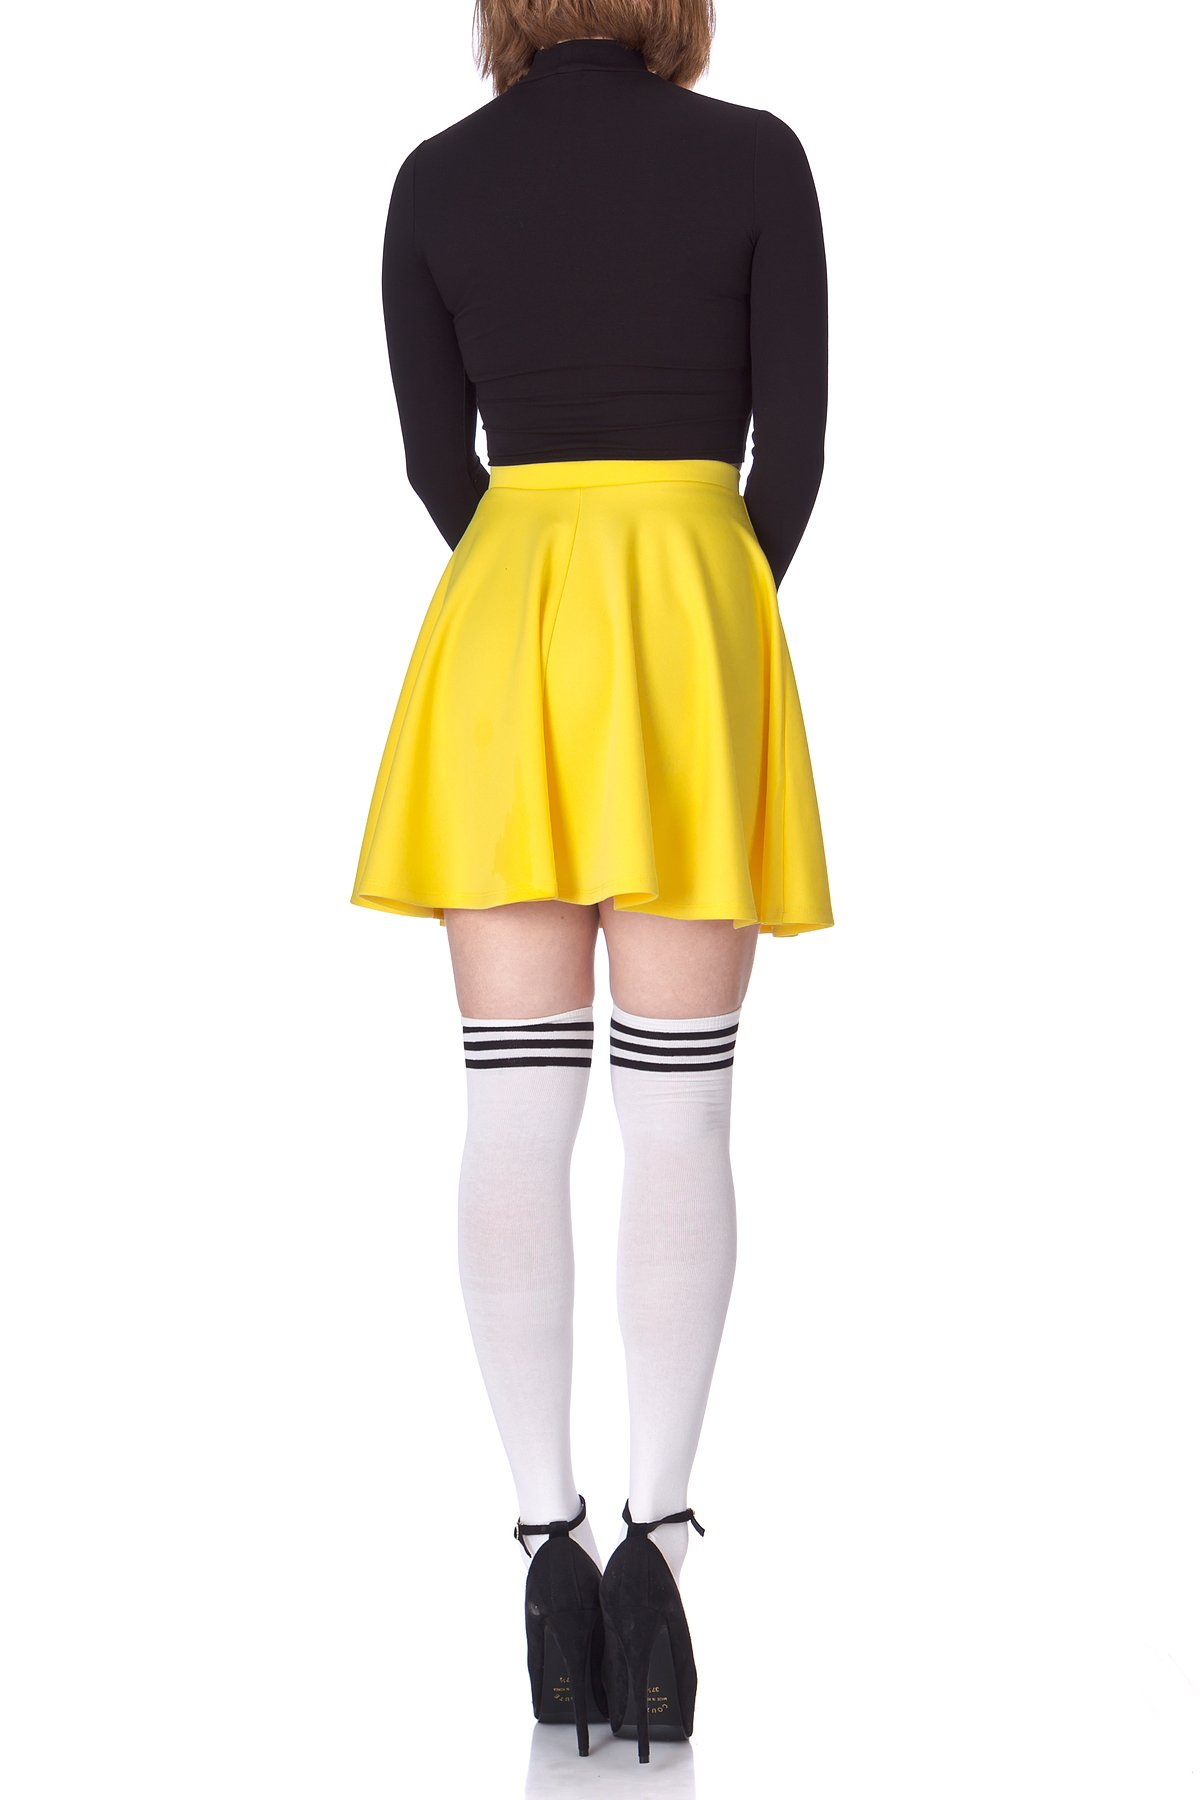 Flouncy High Waist A line Full Flared Circle Swing Dance Party Casual Skater Short Mini Skirt Yellow 05